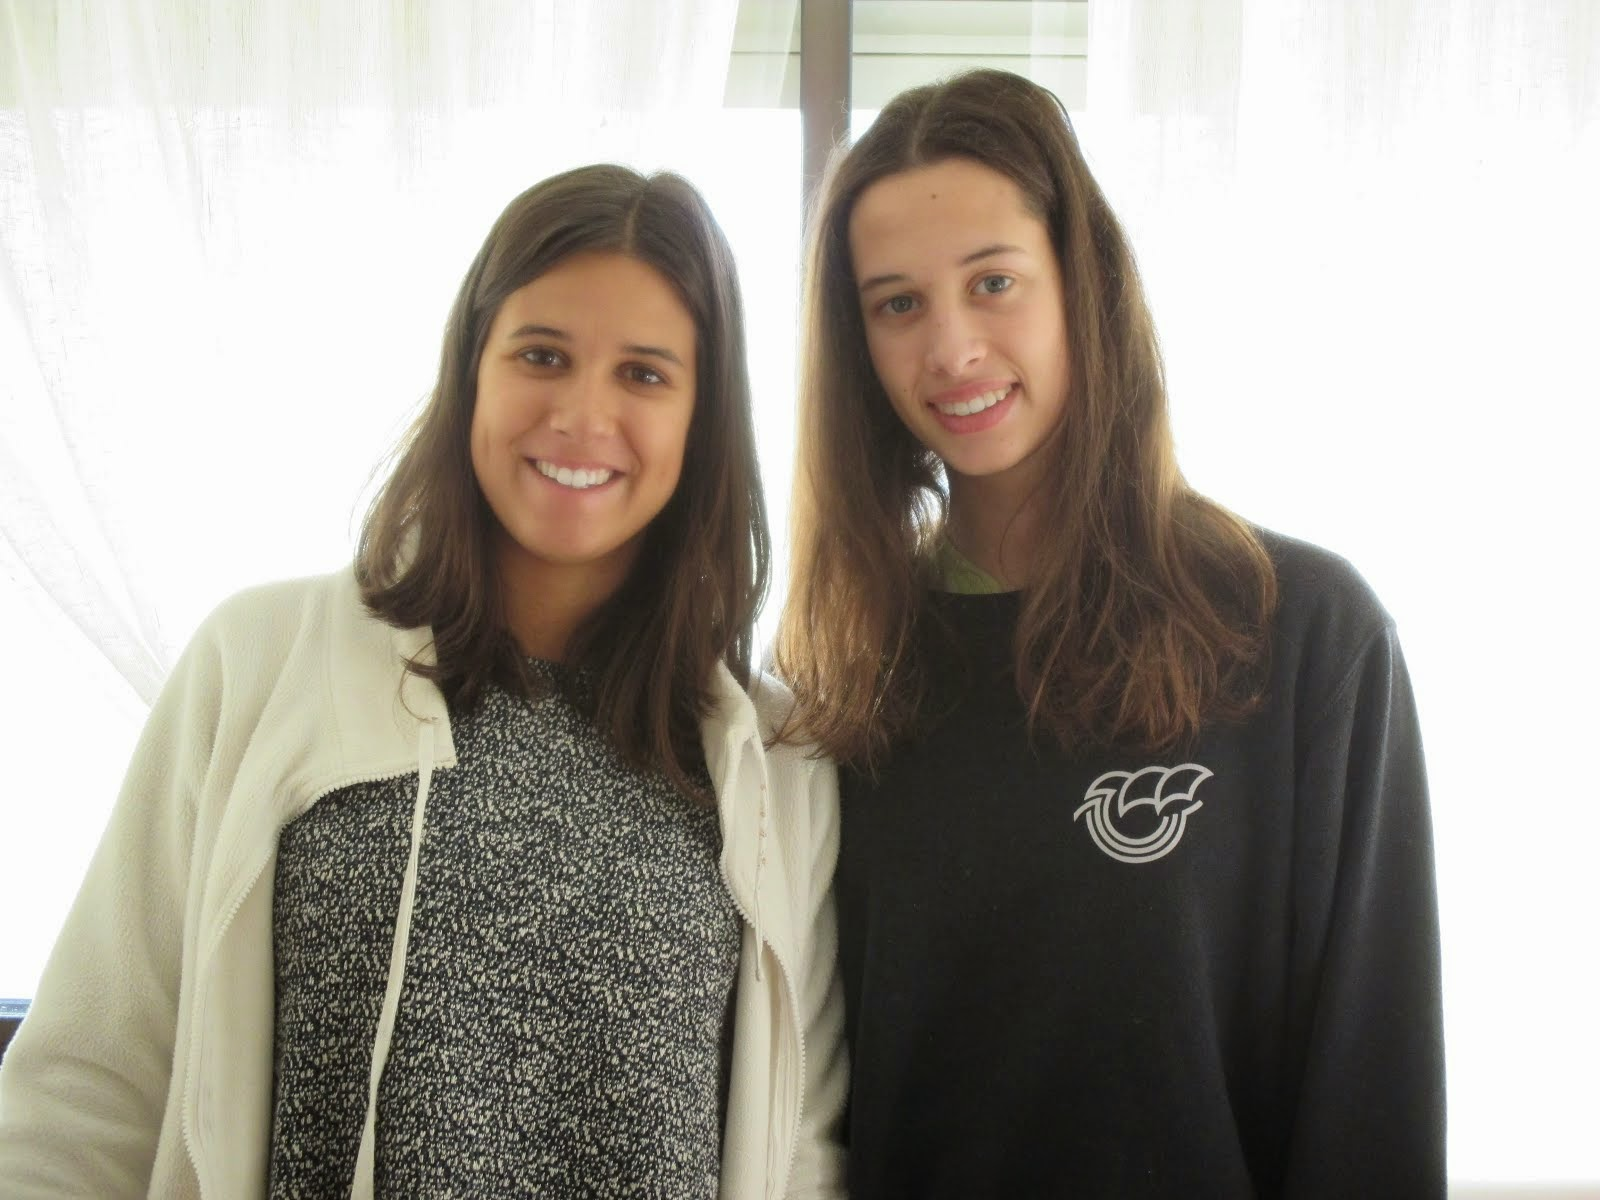 Catarina e Margarida